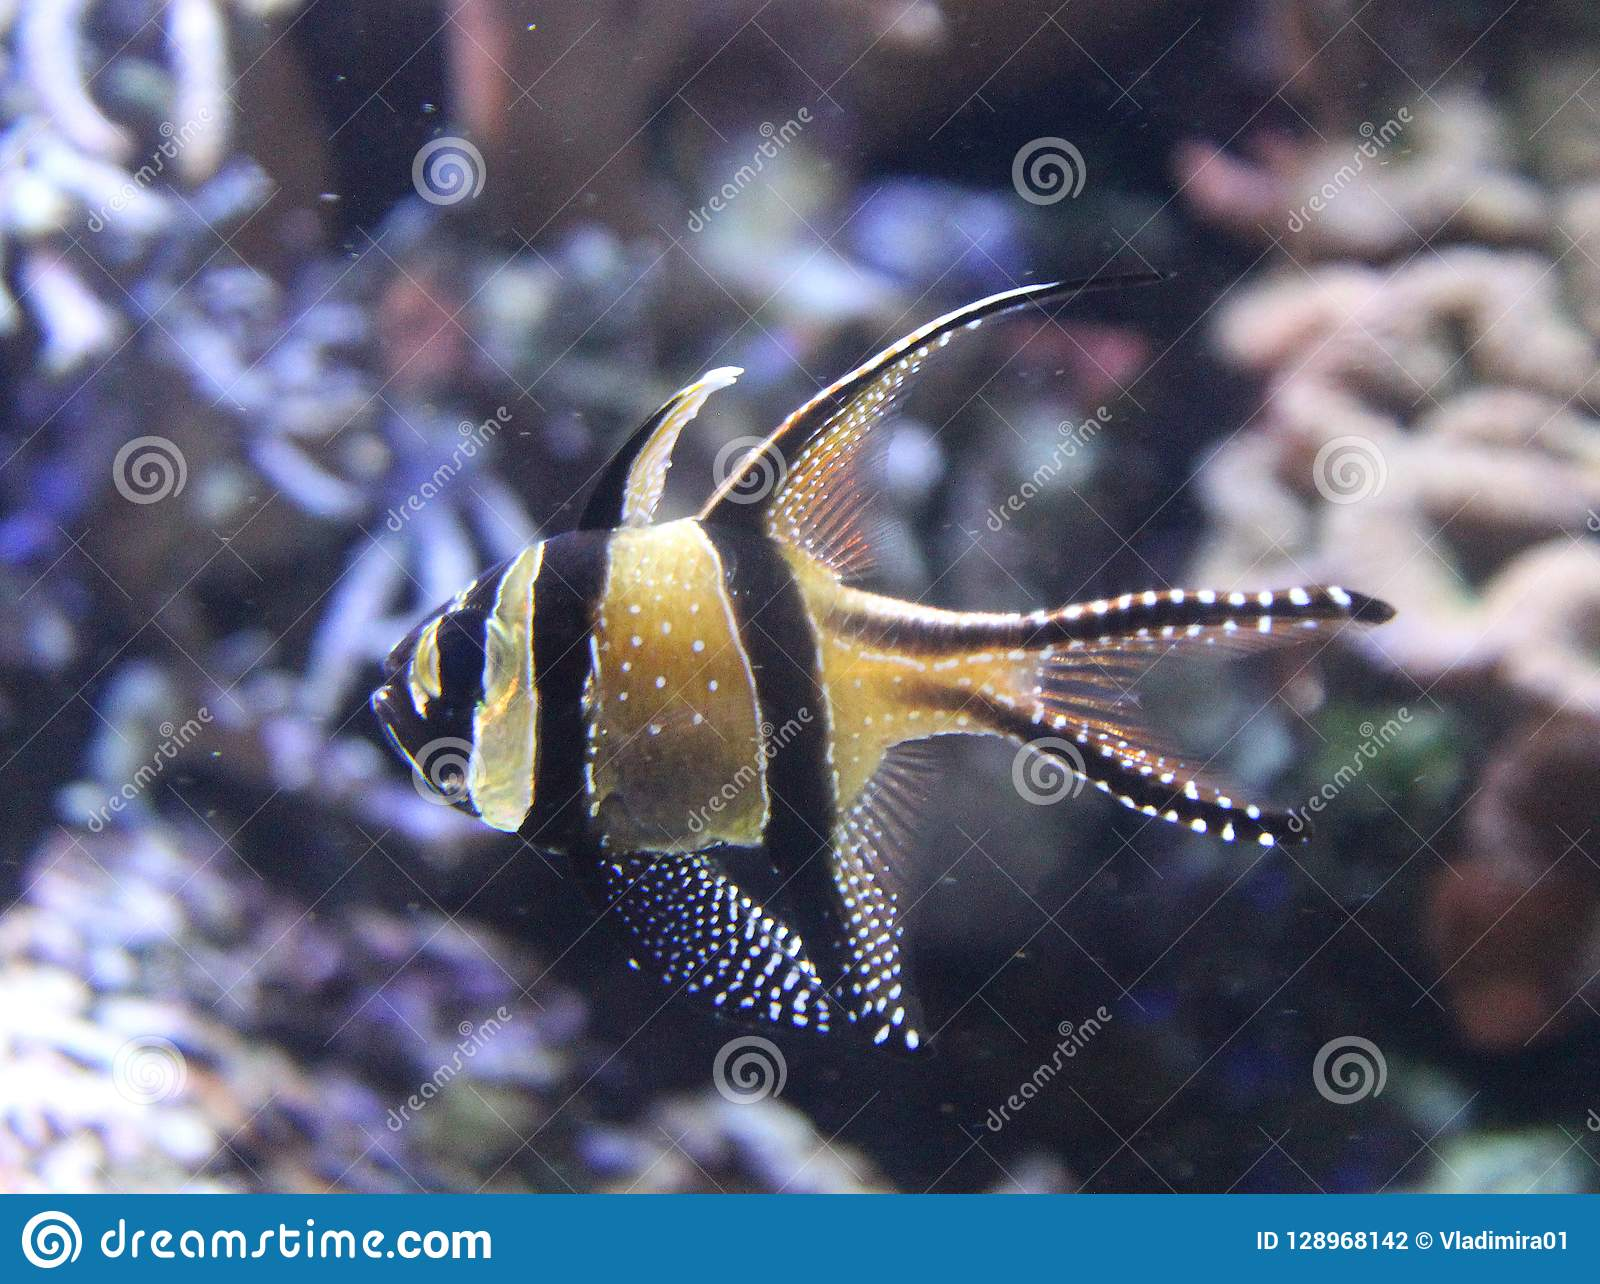 Coral Reef In A Marine Aquarium Interesting Tropical Fish In A Fish Tank Stock Photo Image Of Coral Natural 128968142